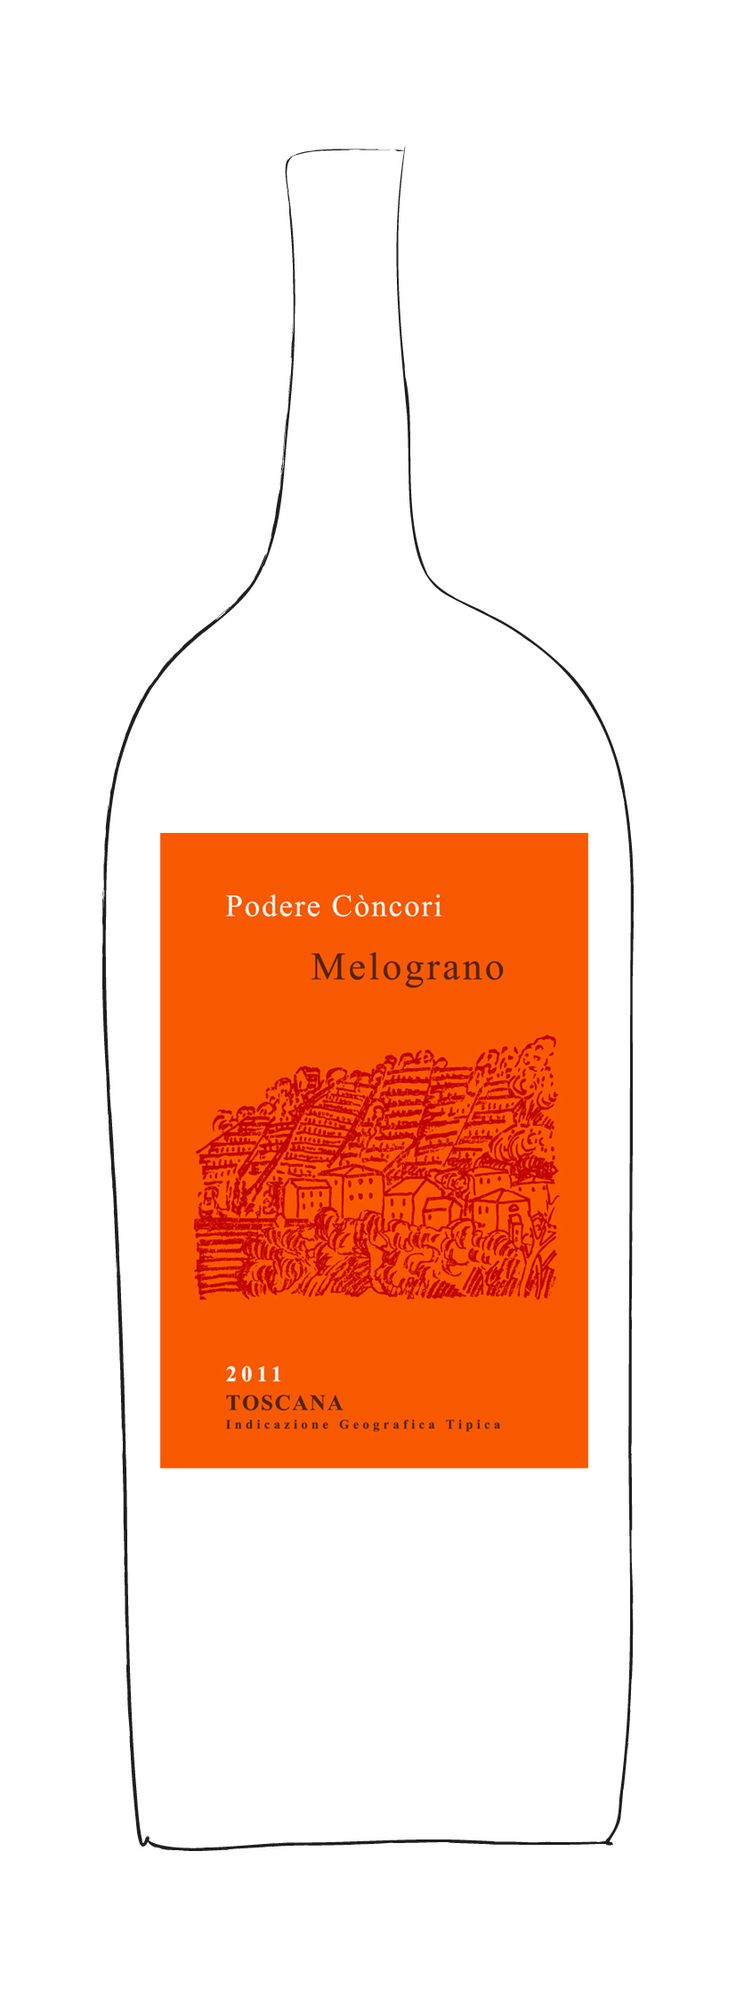 """Melograno 2011, Podere Concori - """"Its ruby red colour sparkles with light. The aromatic profile is clear-cut, intriguing, lively & expressive: red wild berries, black cherry and pepper as well as hints of the aromatic herbs found in the vineyards. Rhythm and freshness. Instinctively easy to enjoy. Grape varieties: Syrah and a small percentage of old native varieties."""""""